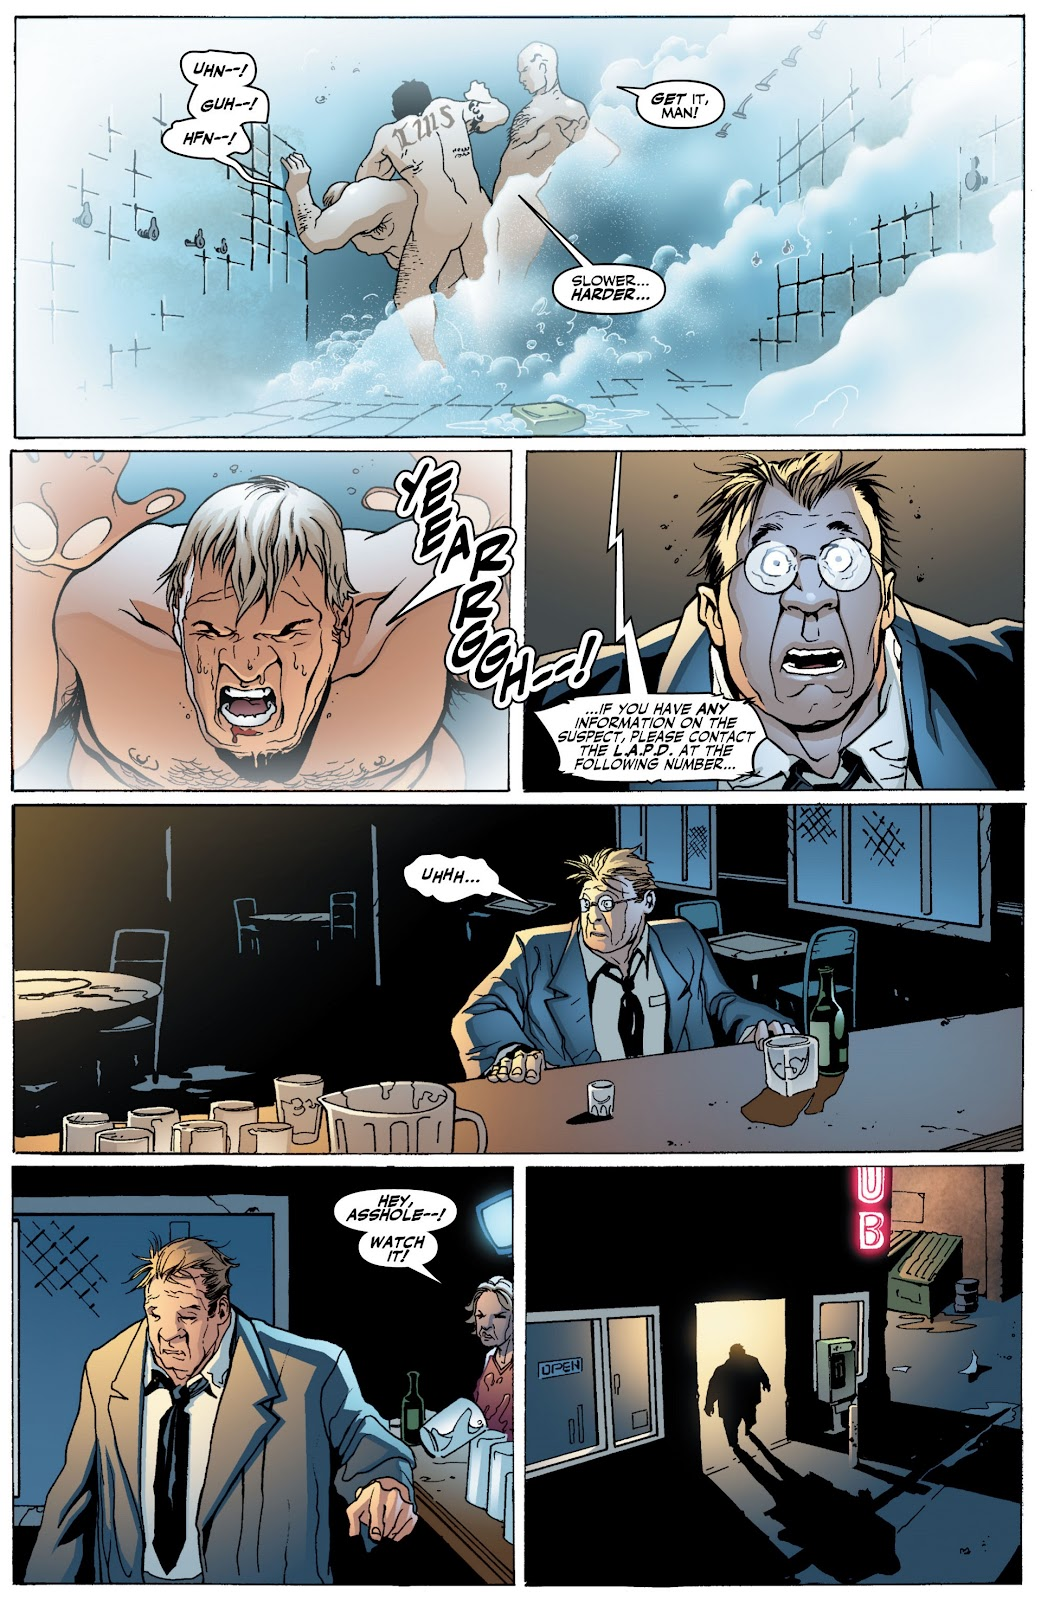 Wildcats Version 3.0 Issue #11 #11 - English 17